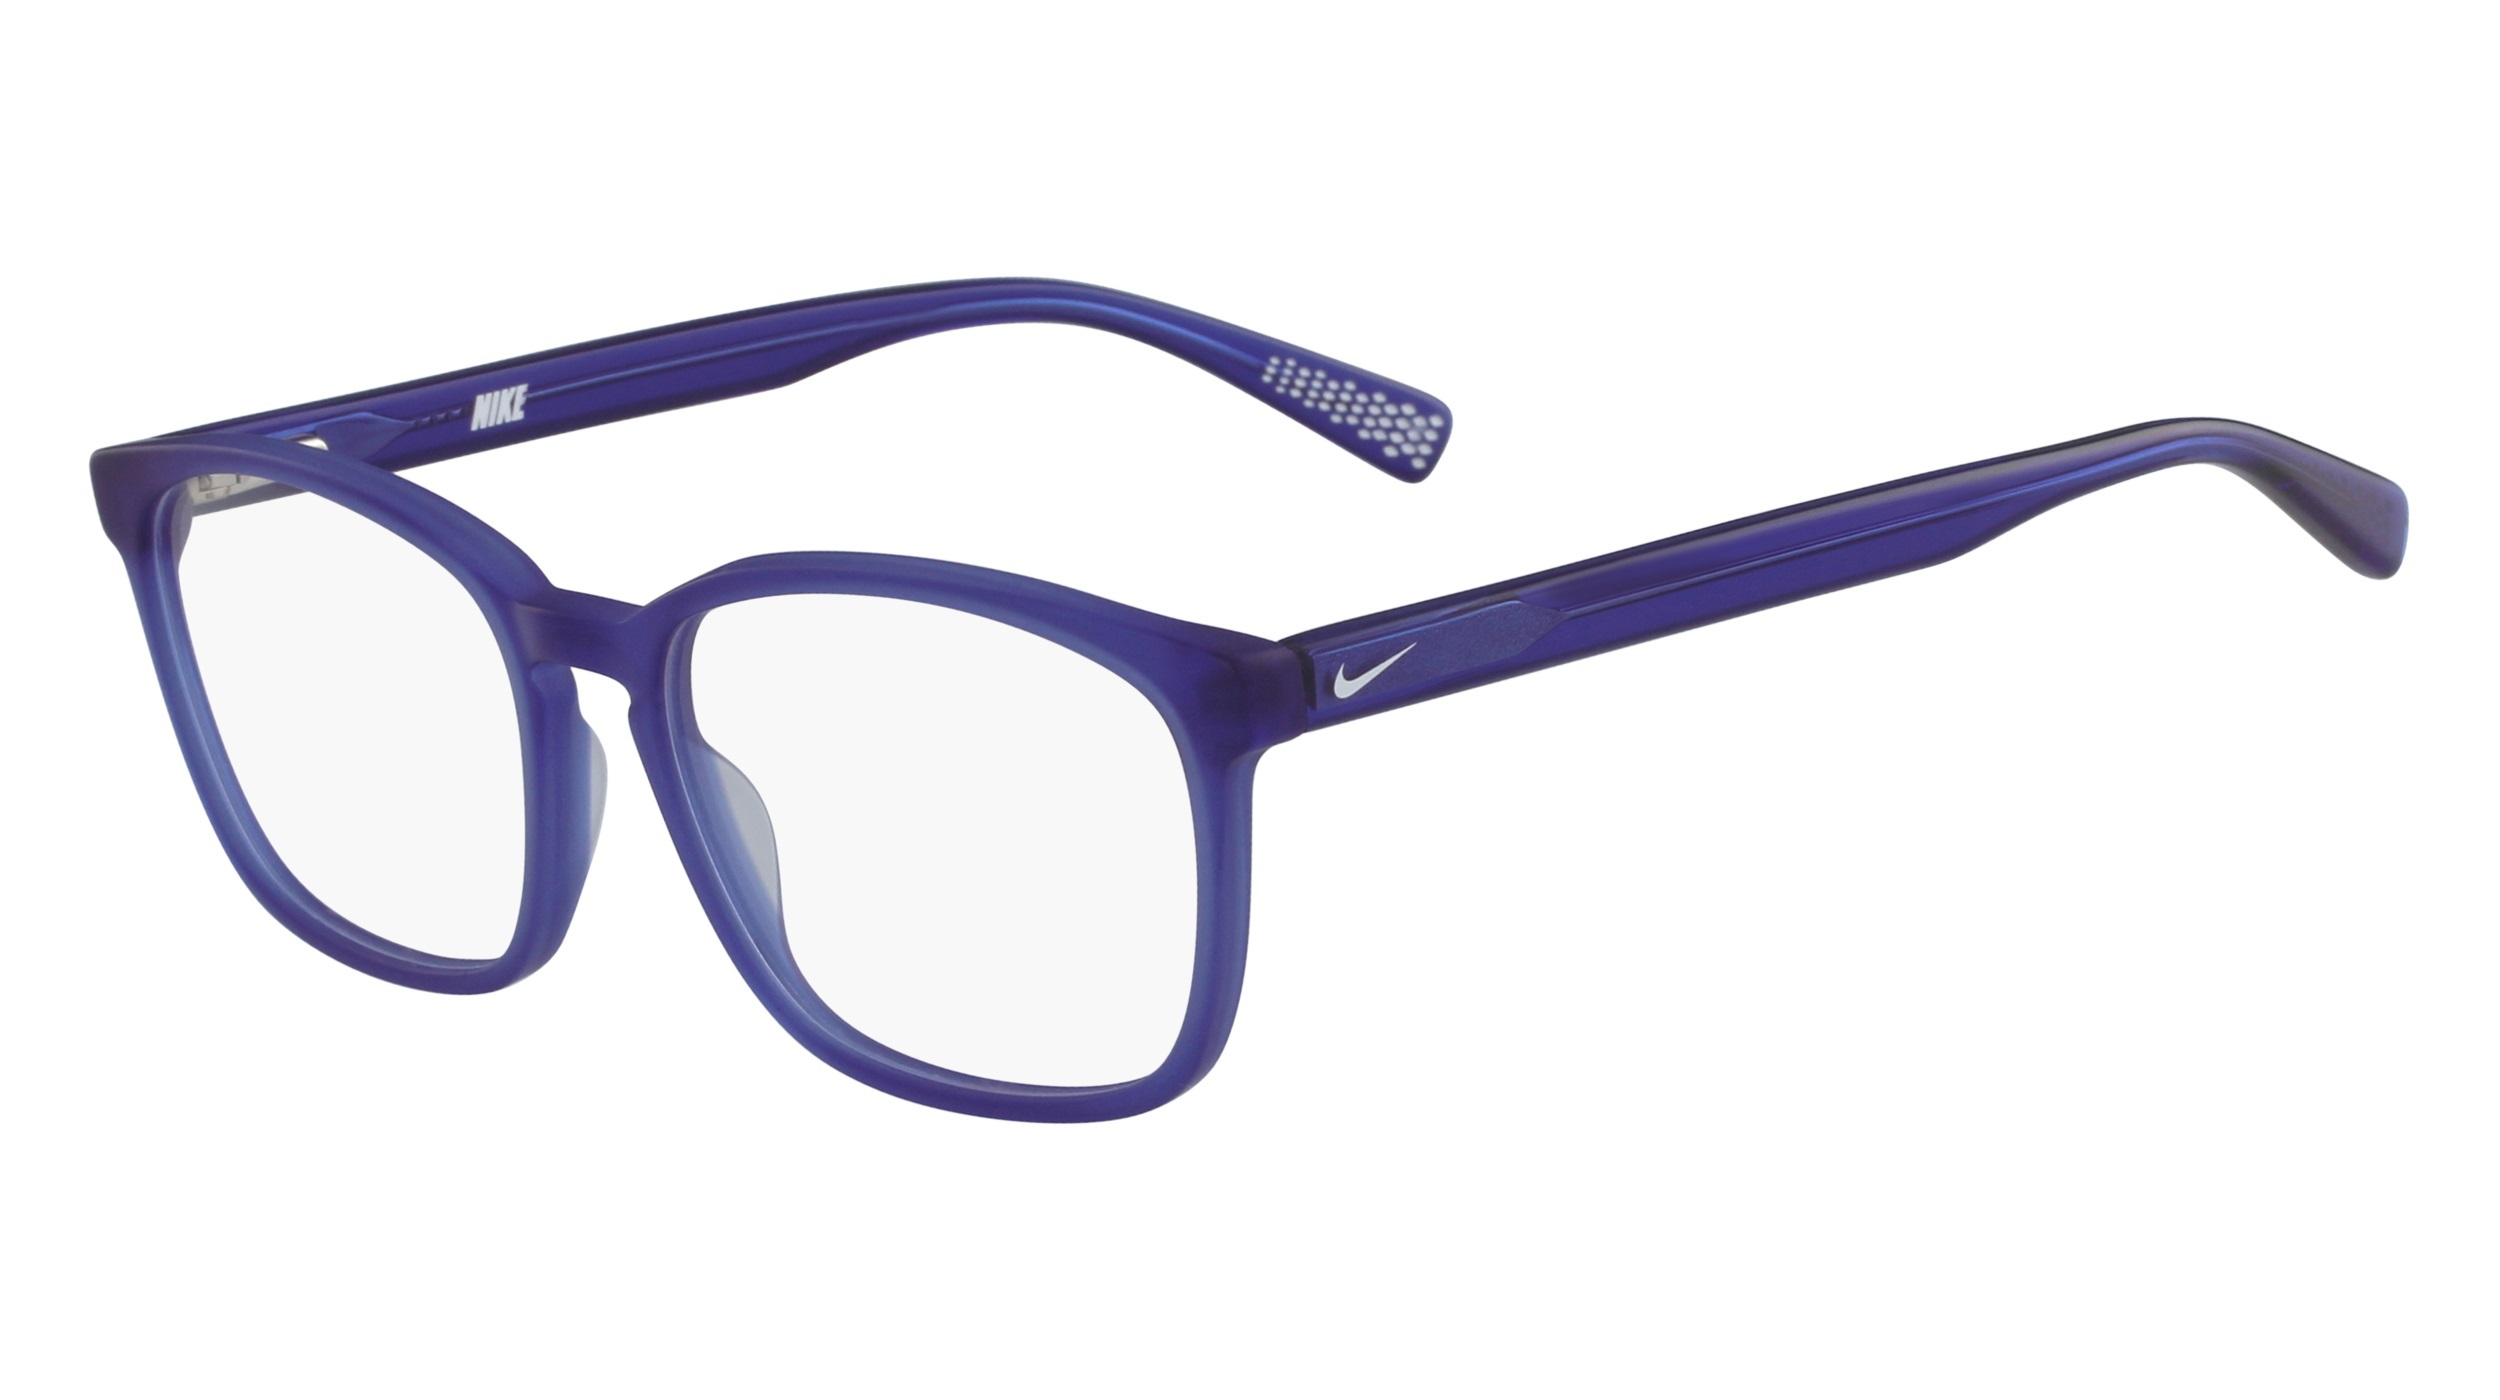 afa90717db2a Nike 5016-432 Kids Eyeglasses Racer Blue Nike5016-432 - Optiwow